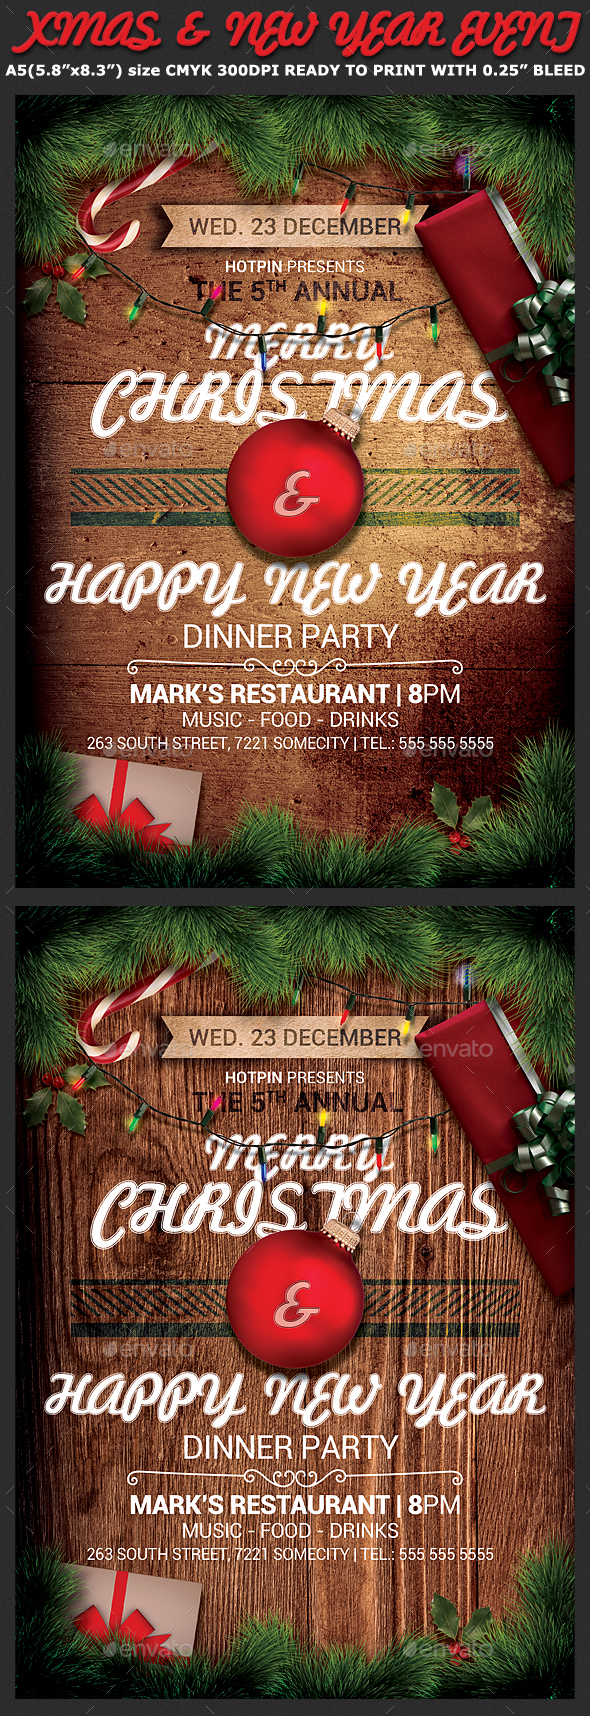 Christmas Event Flyer Template - Holidays Events